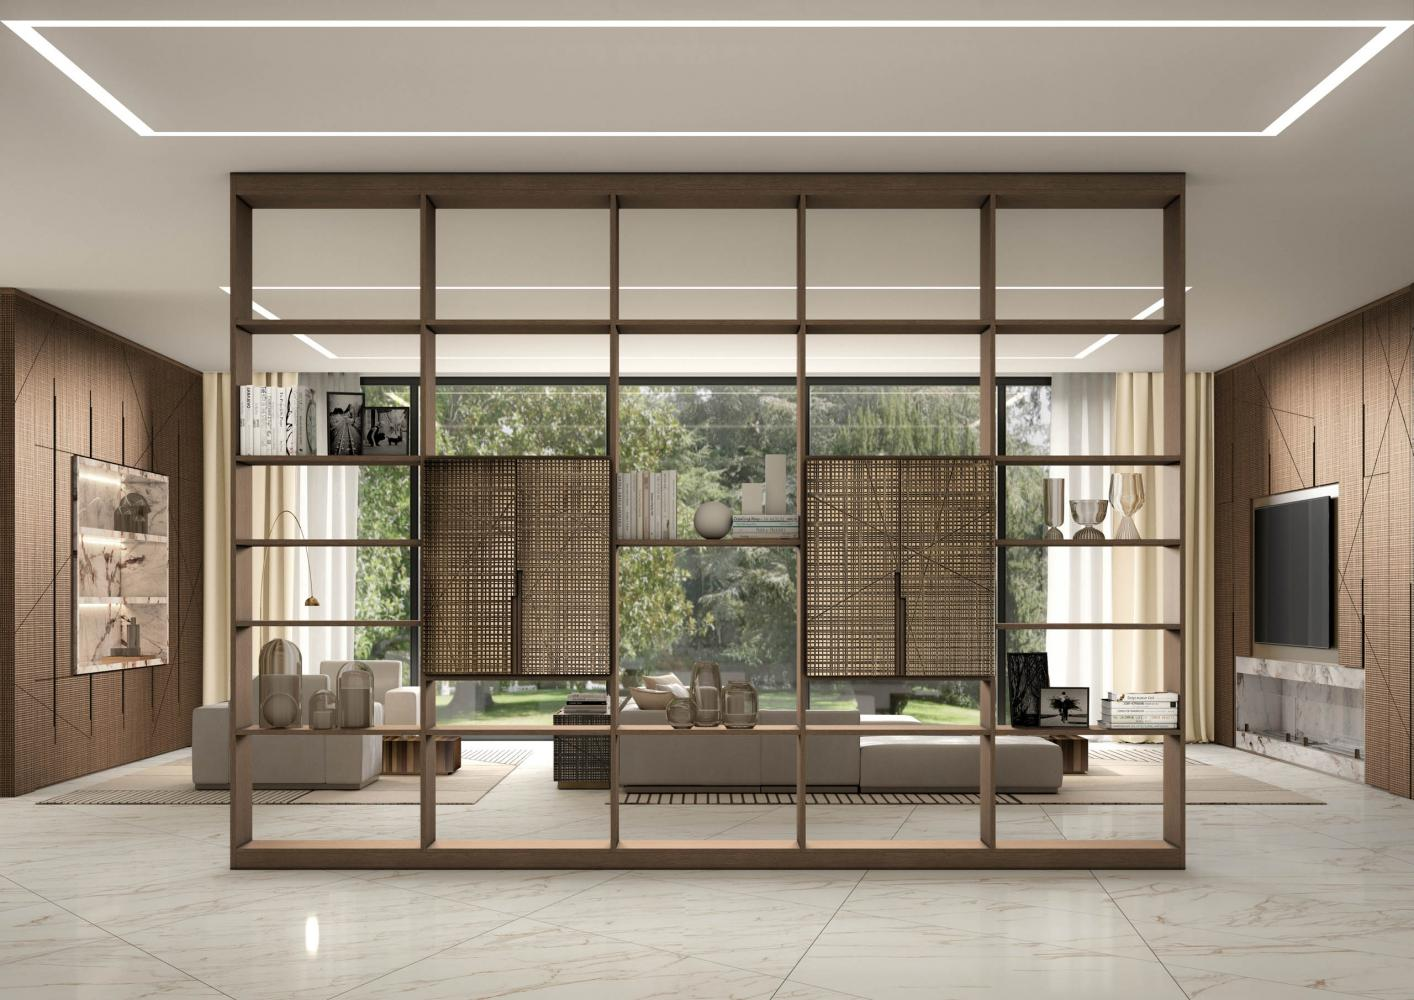 Laurameroni Maxima Cabinet System made to measure artisanal, luxury day wardrobes in carved wood